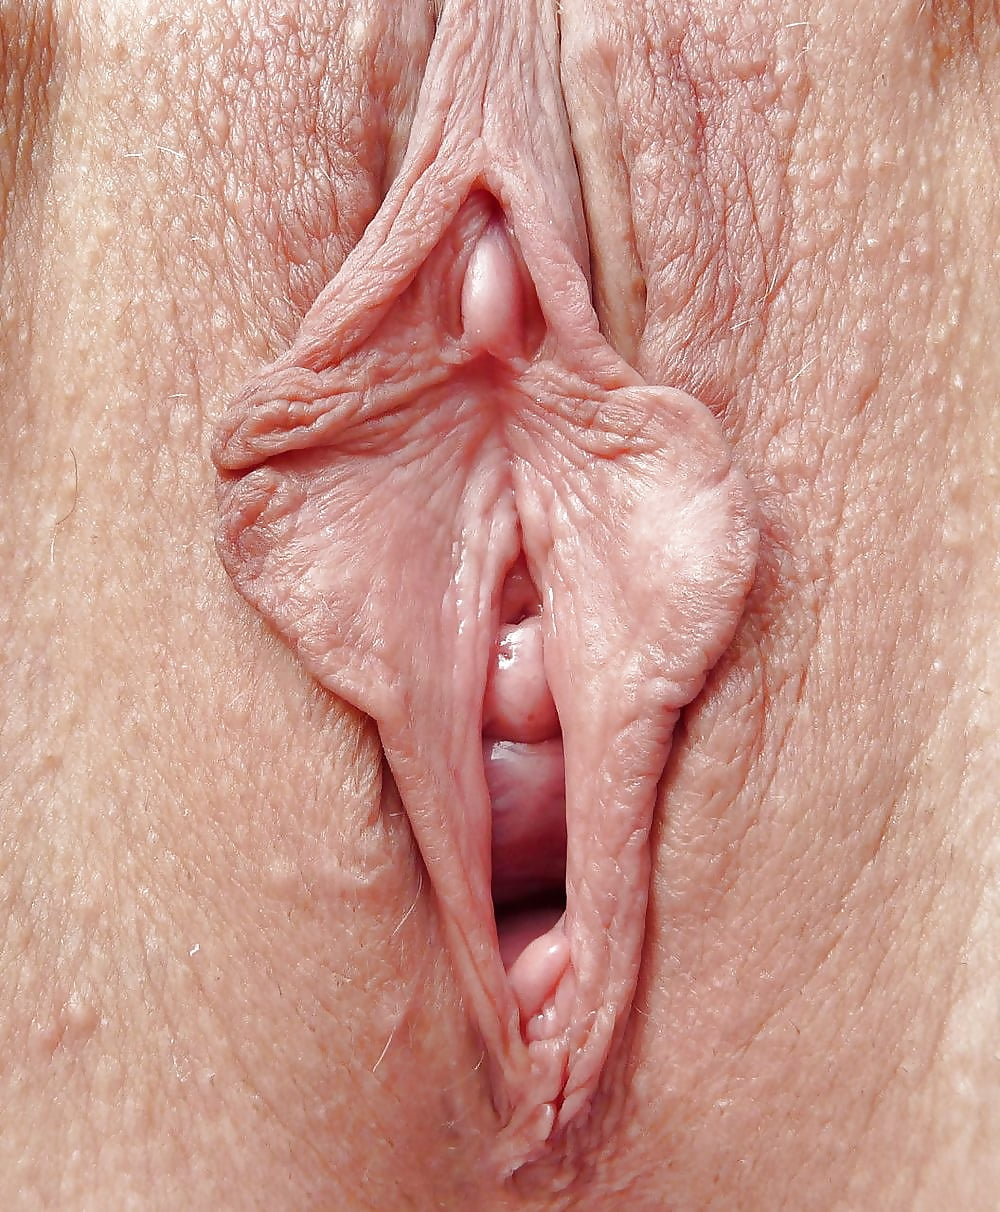 Perfect smooth pussy, no clit, no labia